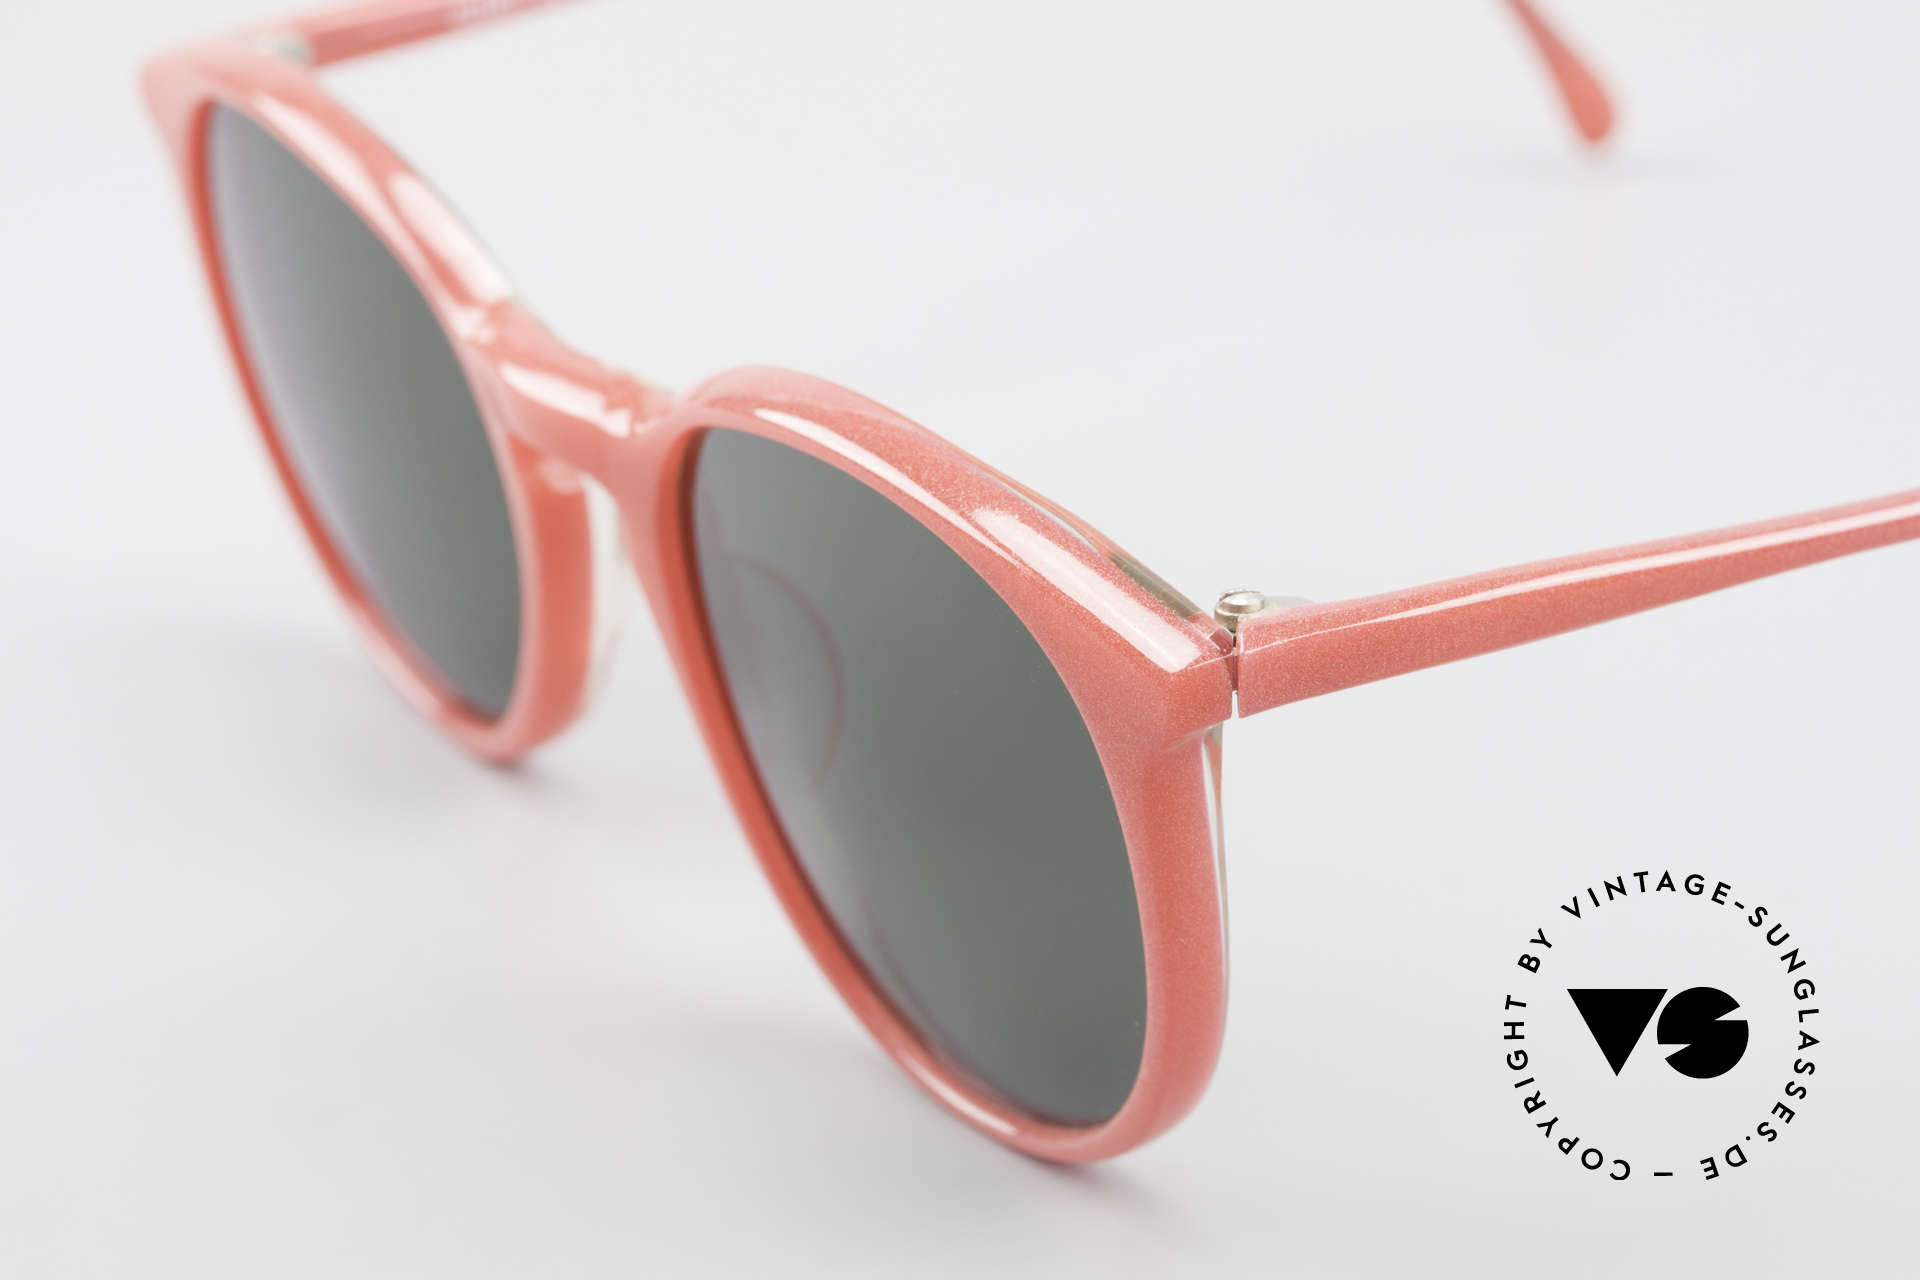 Alain Mikli 901 / 086 Red Pearl Panto Sunglasses, handmade quality and 125mm width = S - M size!, Made for Men and Women